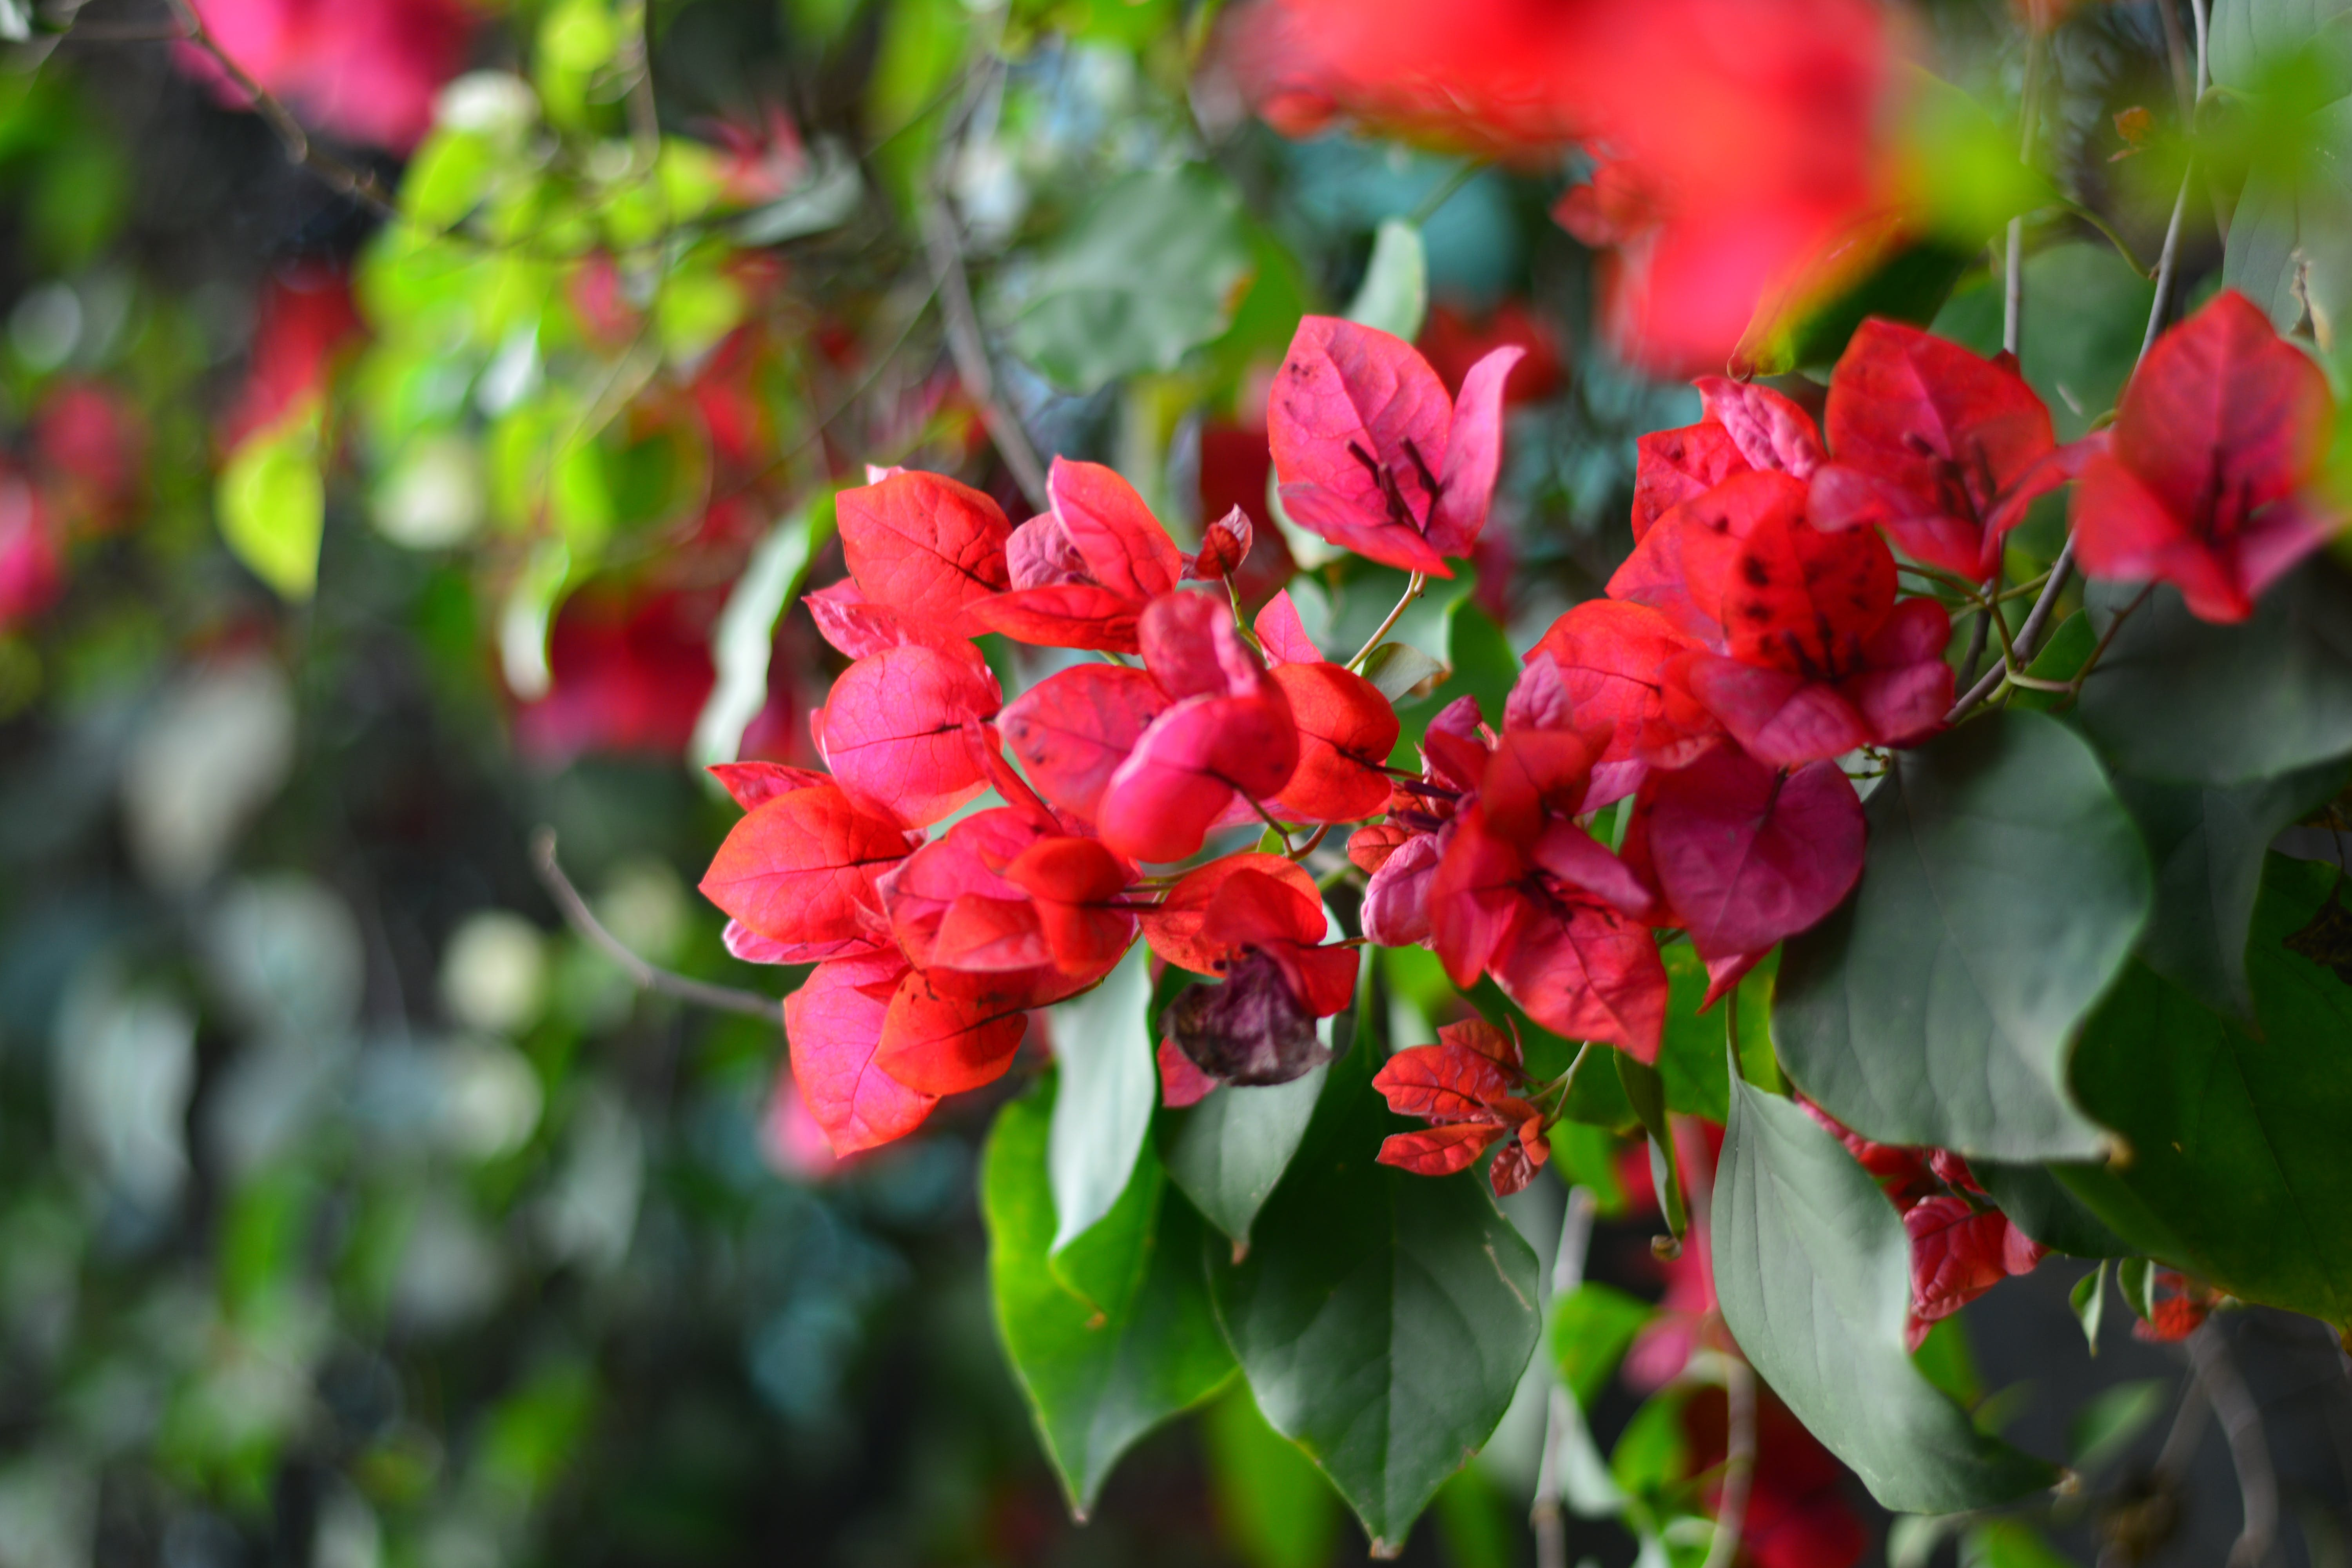 Free stock photo of flowers, red